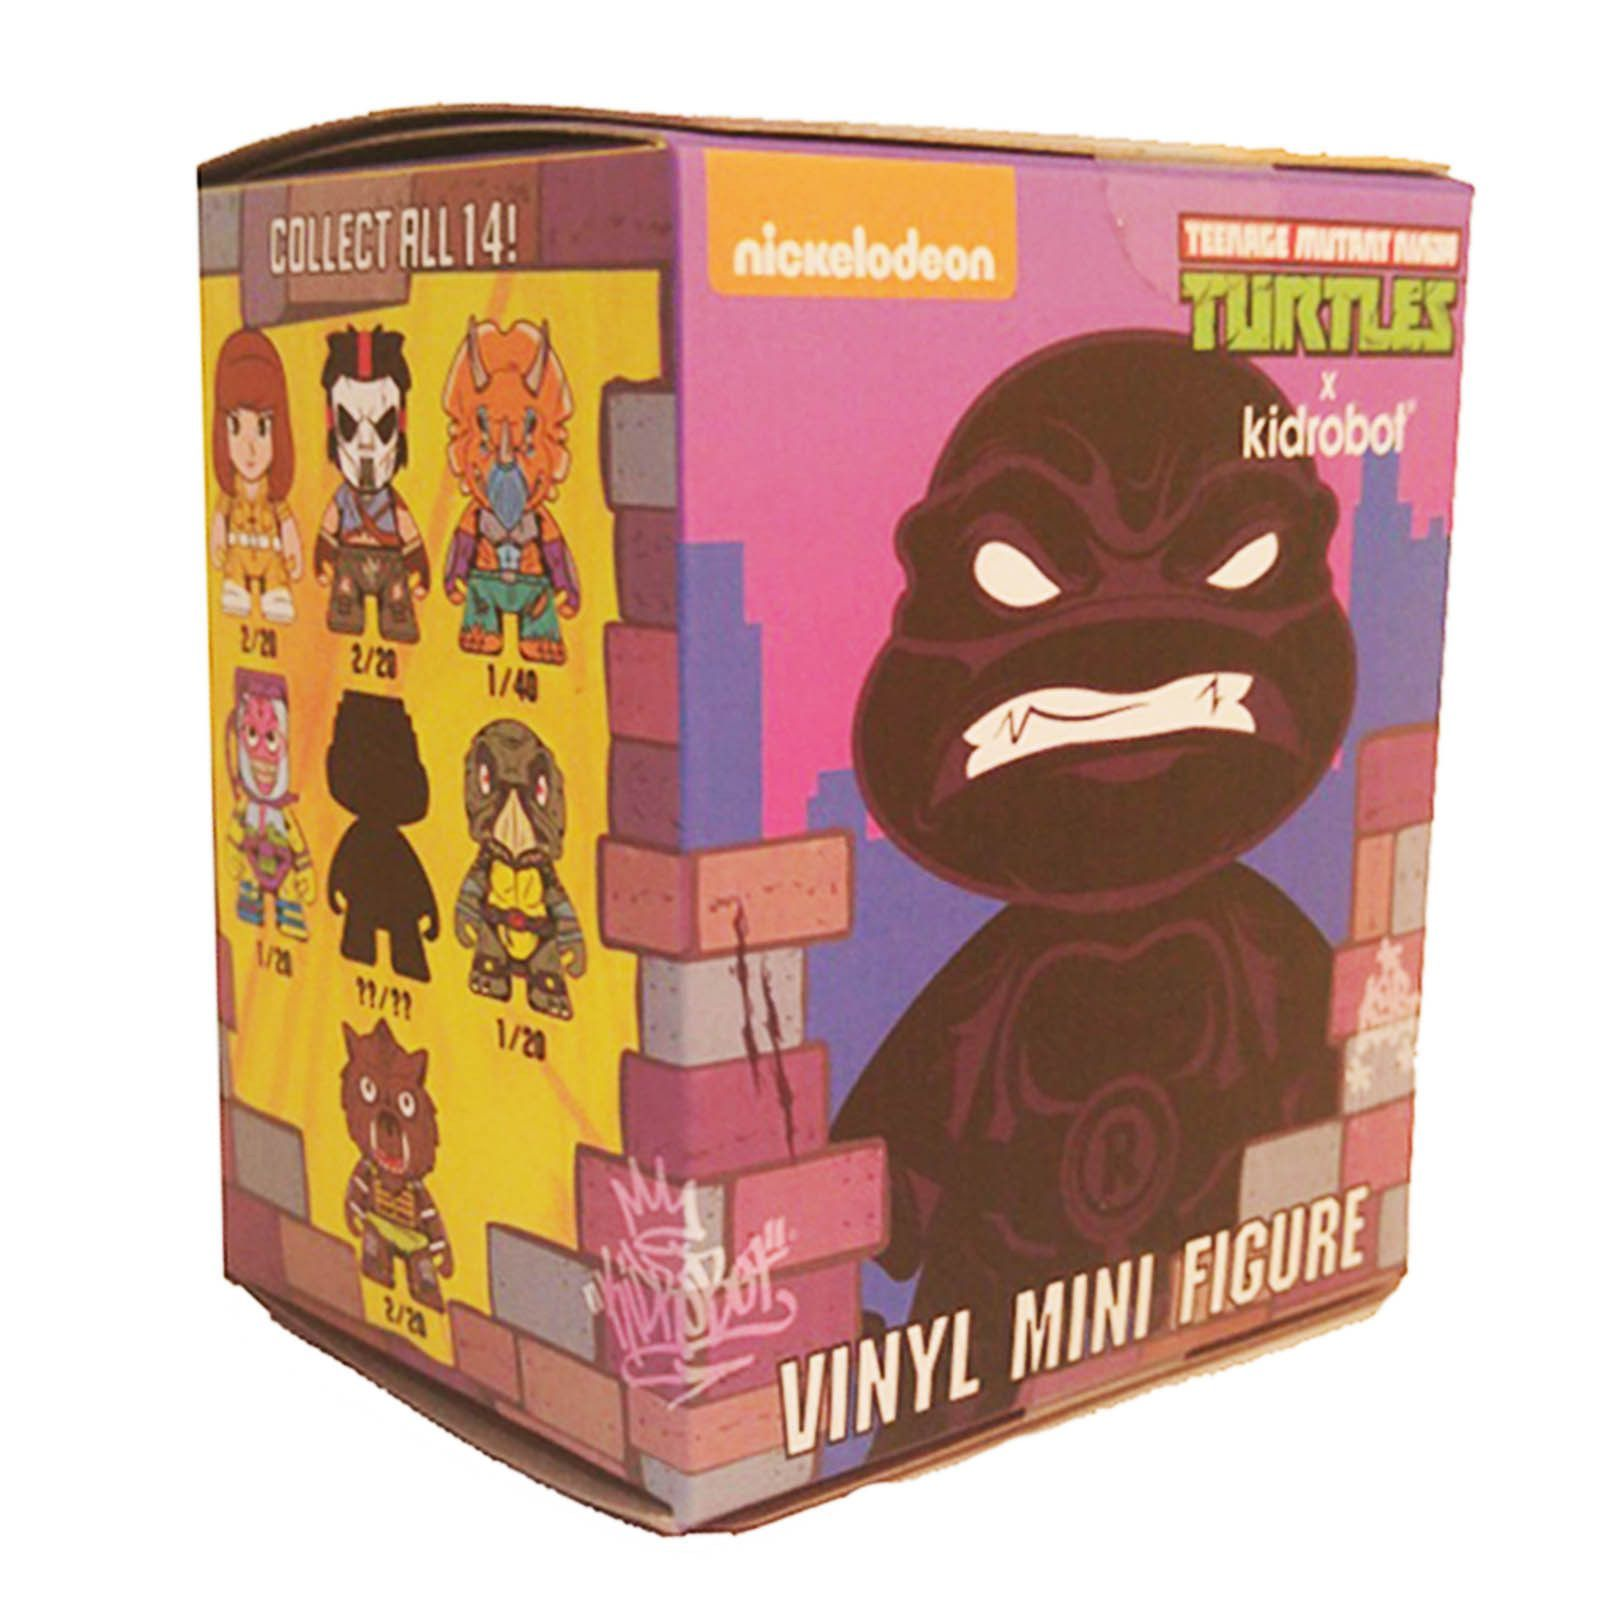 TEENAGE MUTANT NINJA TURTLE SHELL SHOCK TMNT CASE 24 BLIND BOX KEYCHAIN KIDROBOT